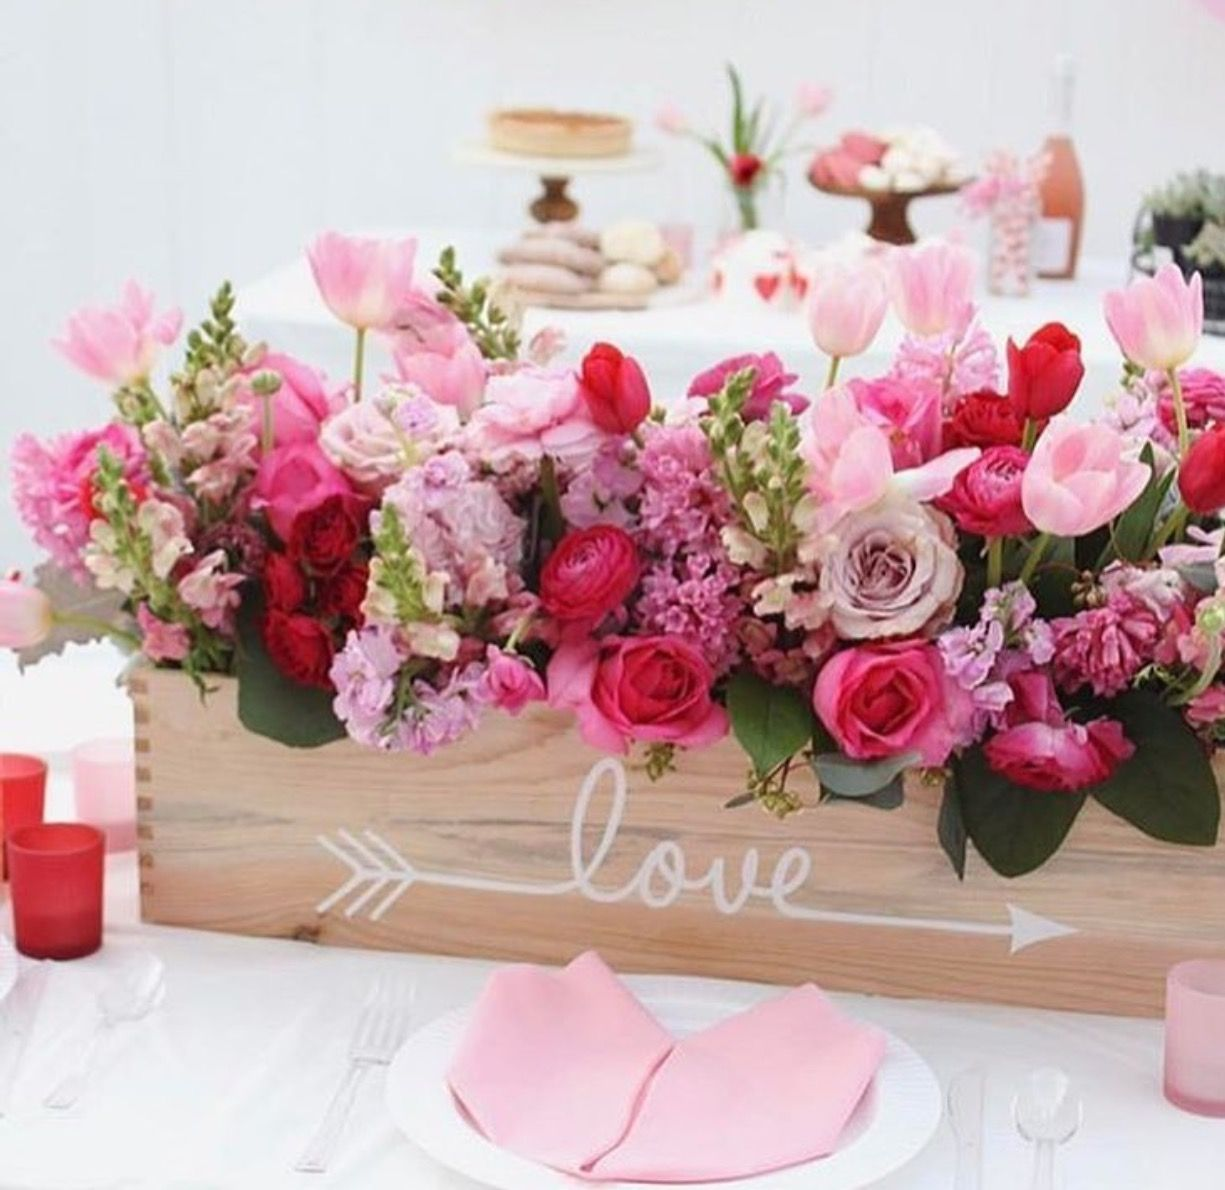 Love this pink and white flower arrangement in box